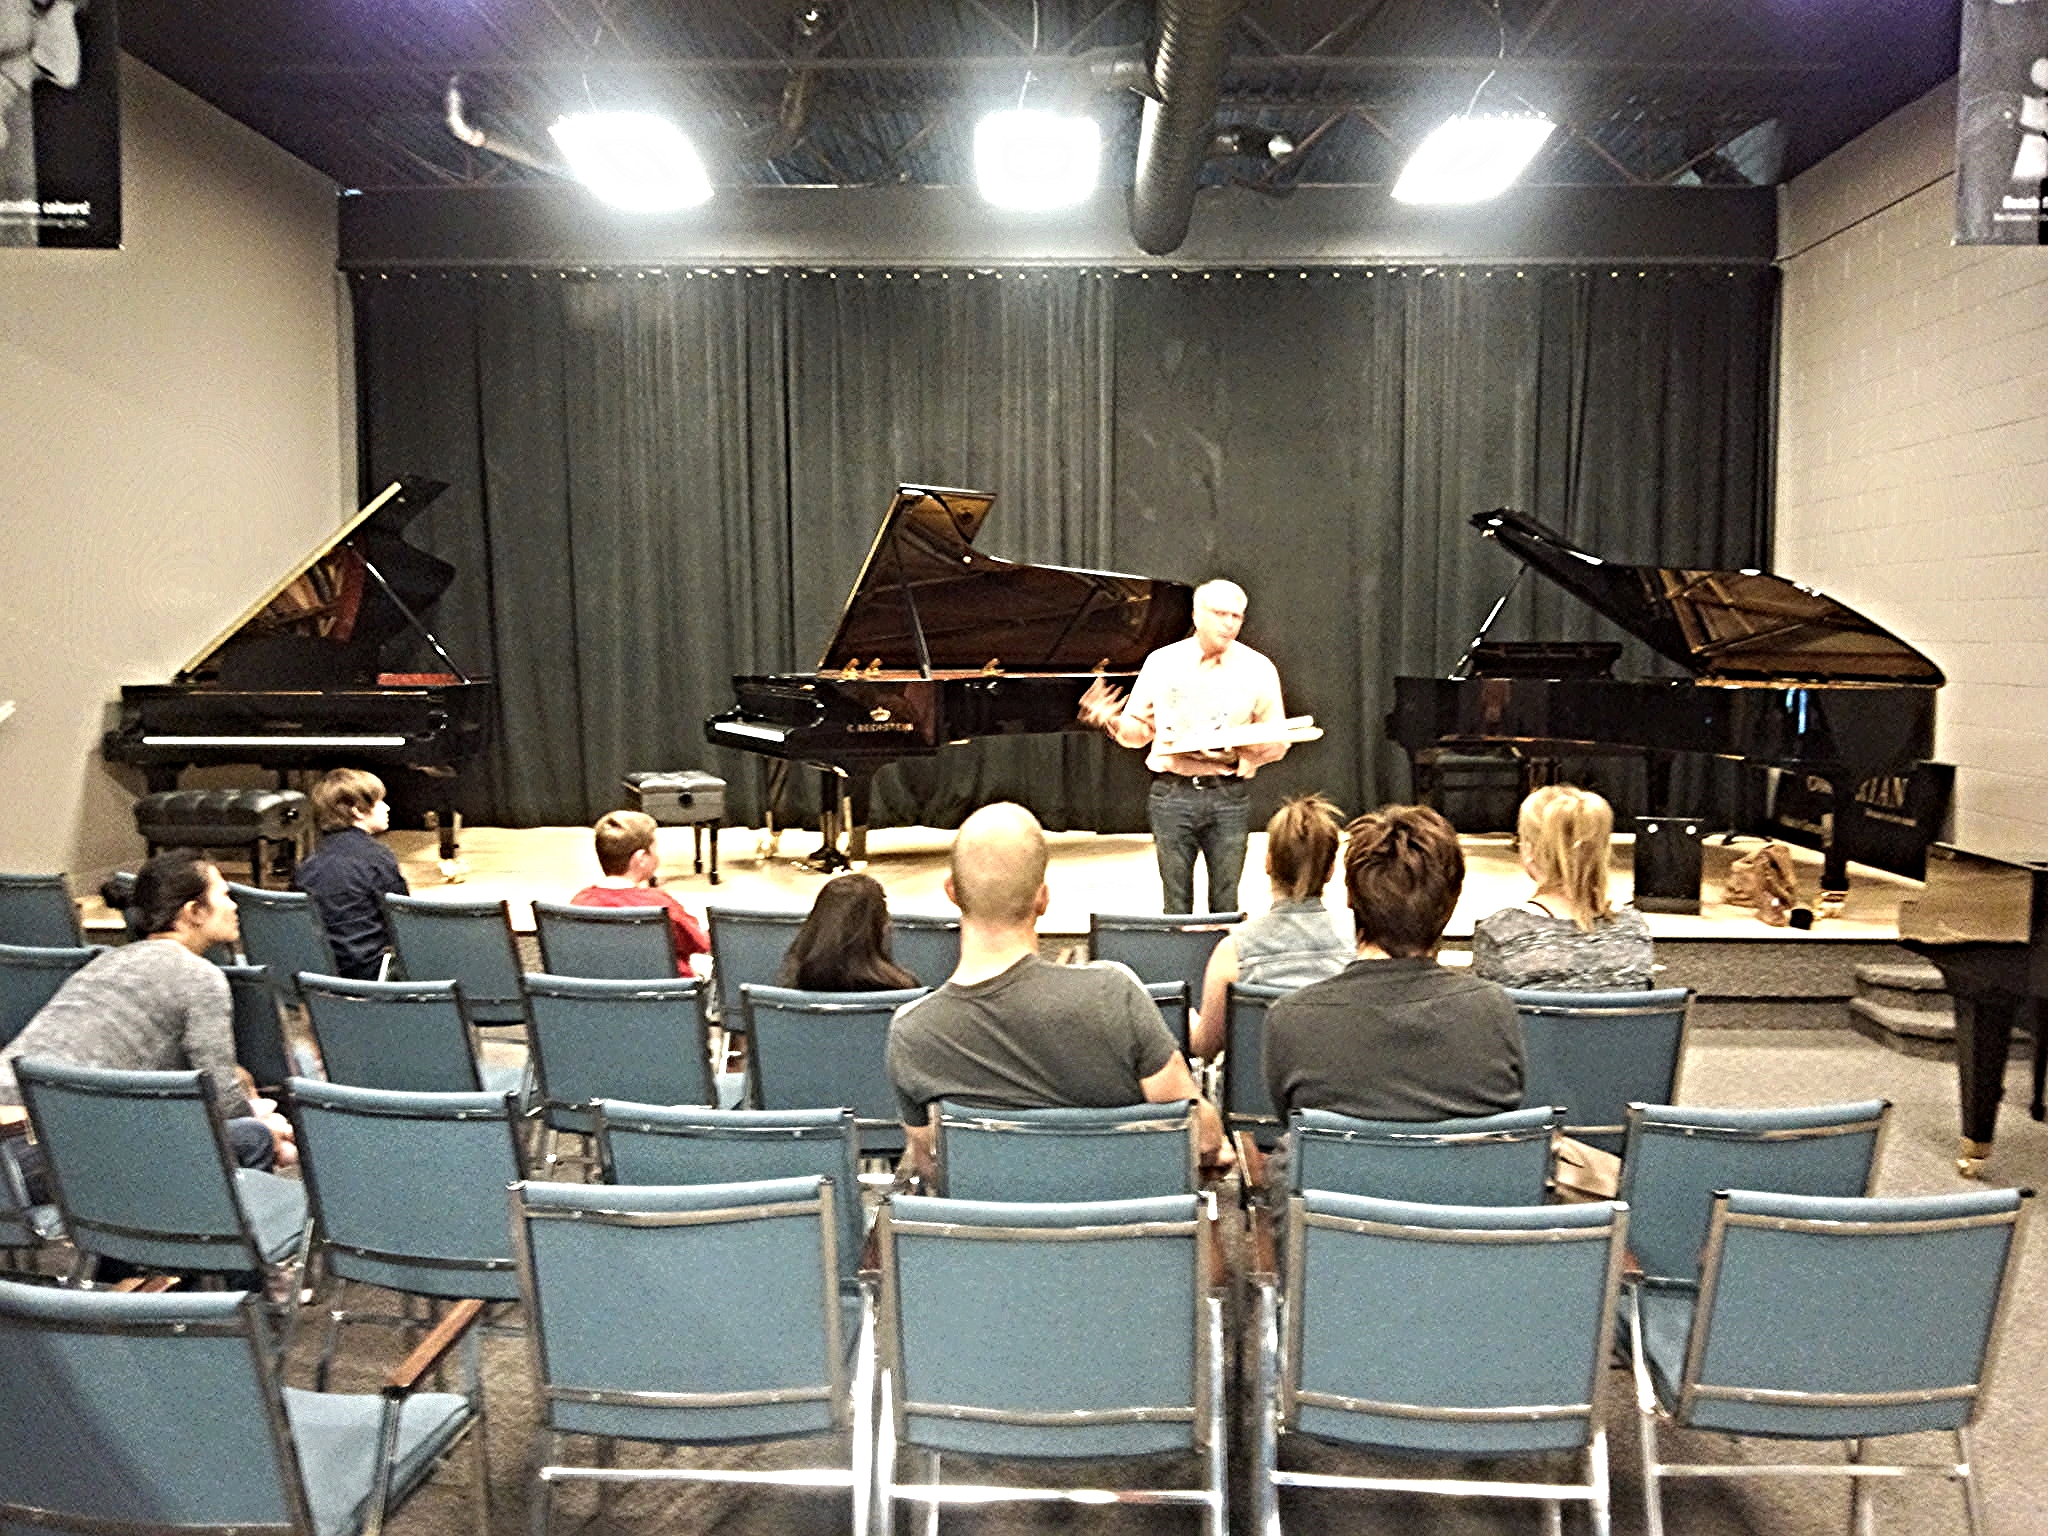 A Look Inside the Piano Workshop